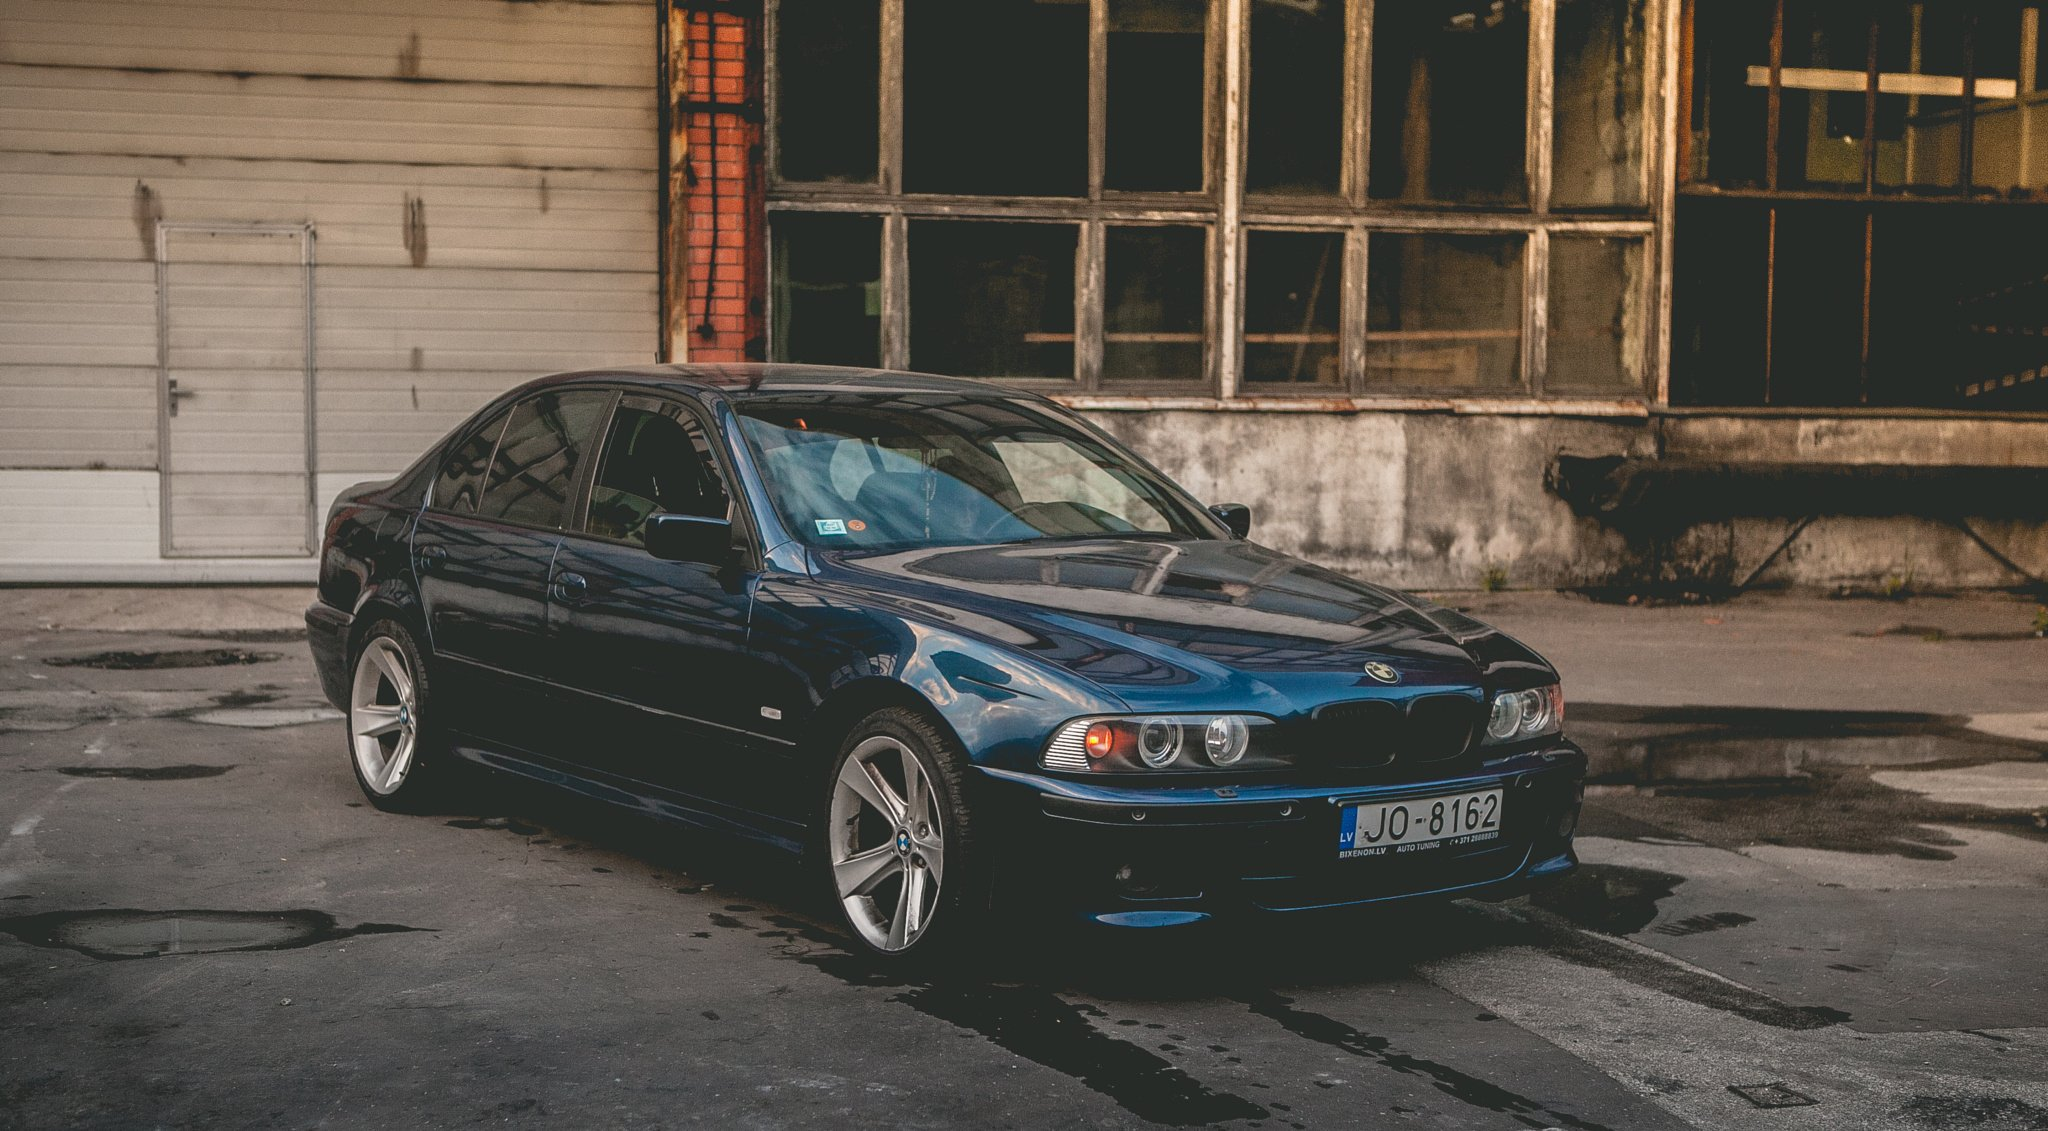 Good Wallpaper High Quality Bmw - BMW-e39-High-Quality-Wallpapers  Best Photo Reference_2110078.jpg